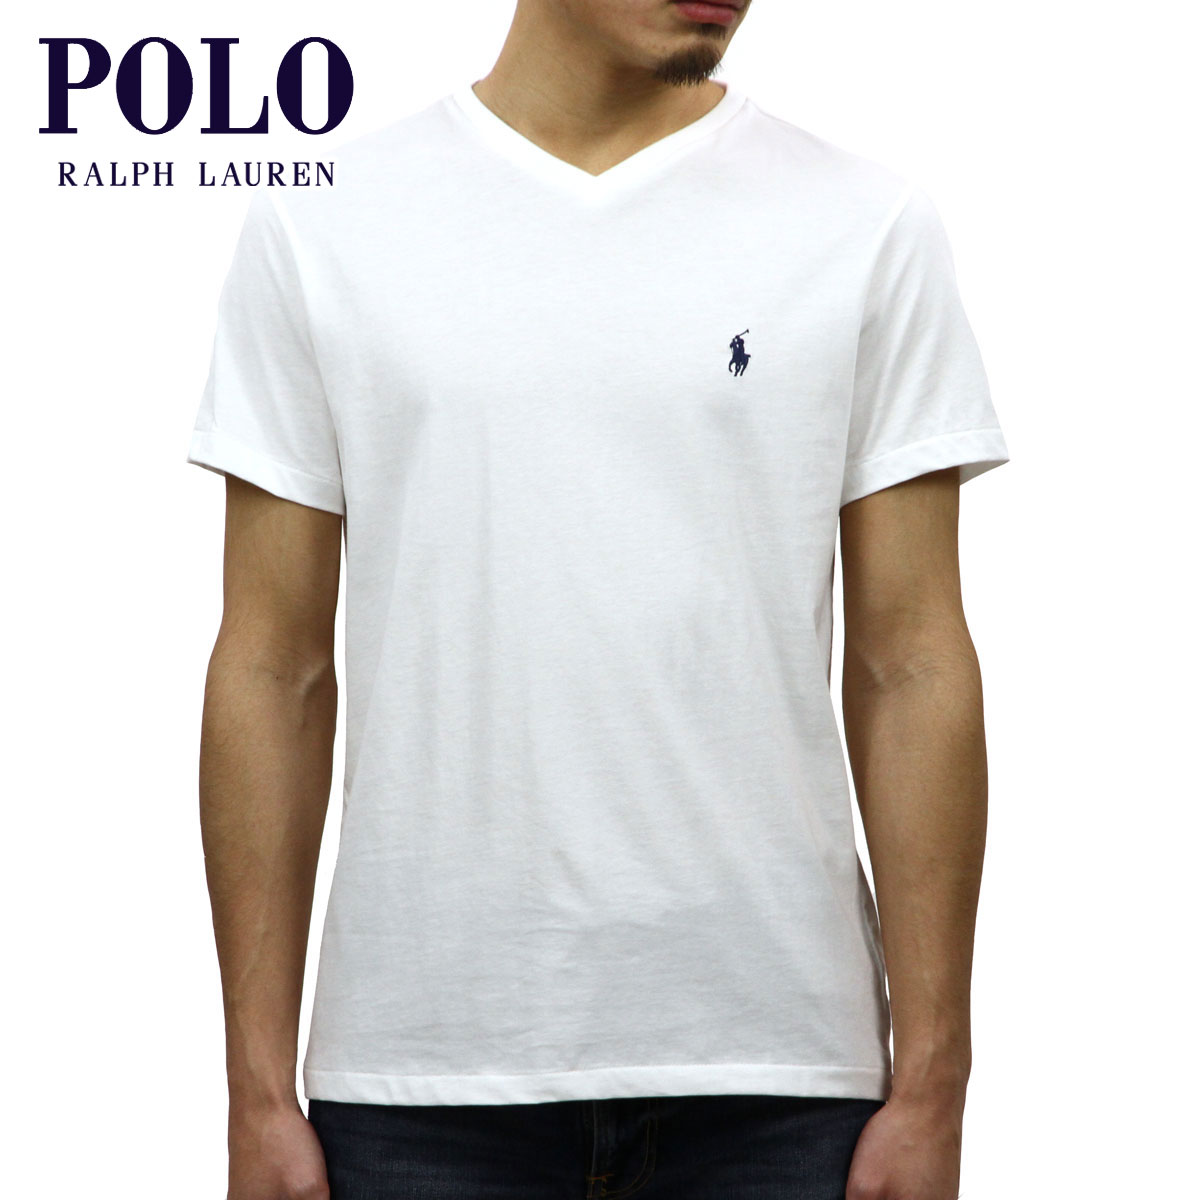 9ab4d7a3e Rakuten Ichiba shop MIXON: Polo Ralph Lauren POLO RALPH LAUREN regular  article men short sleeves V neck T-shirt SHORT-SLEEVED V-NECK TEE WHITE |  Rakuten ...